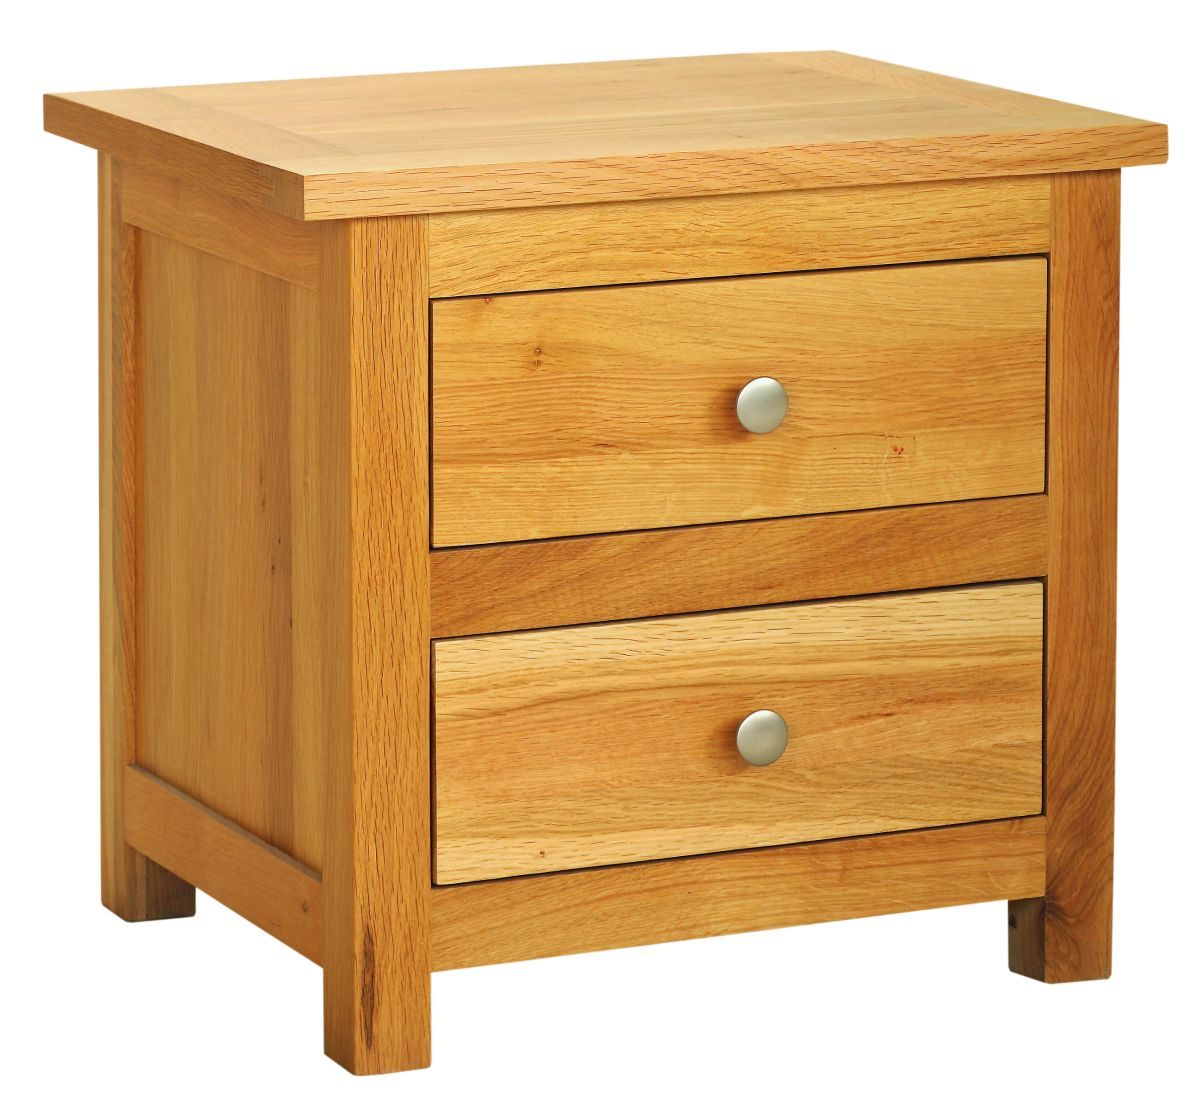 Solid Oak Bedside Cabinet, 2 Drawers